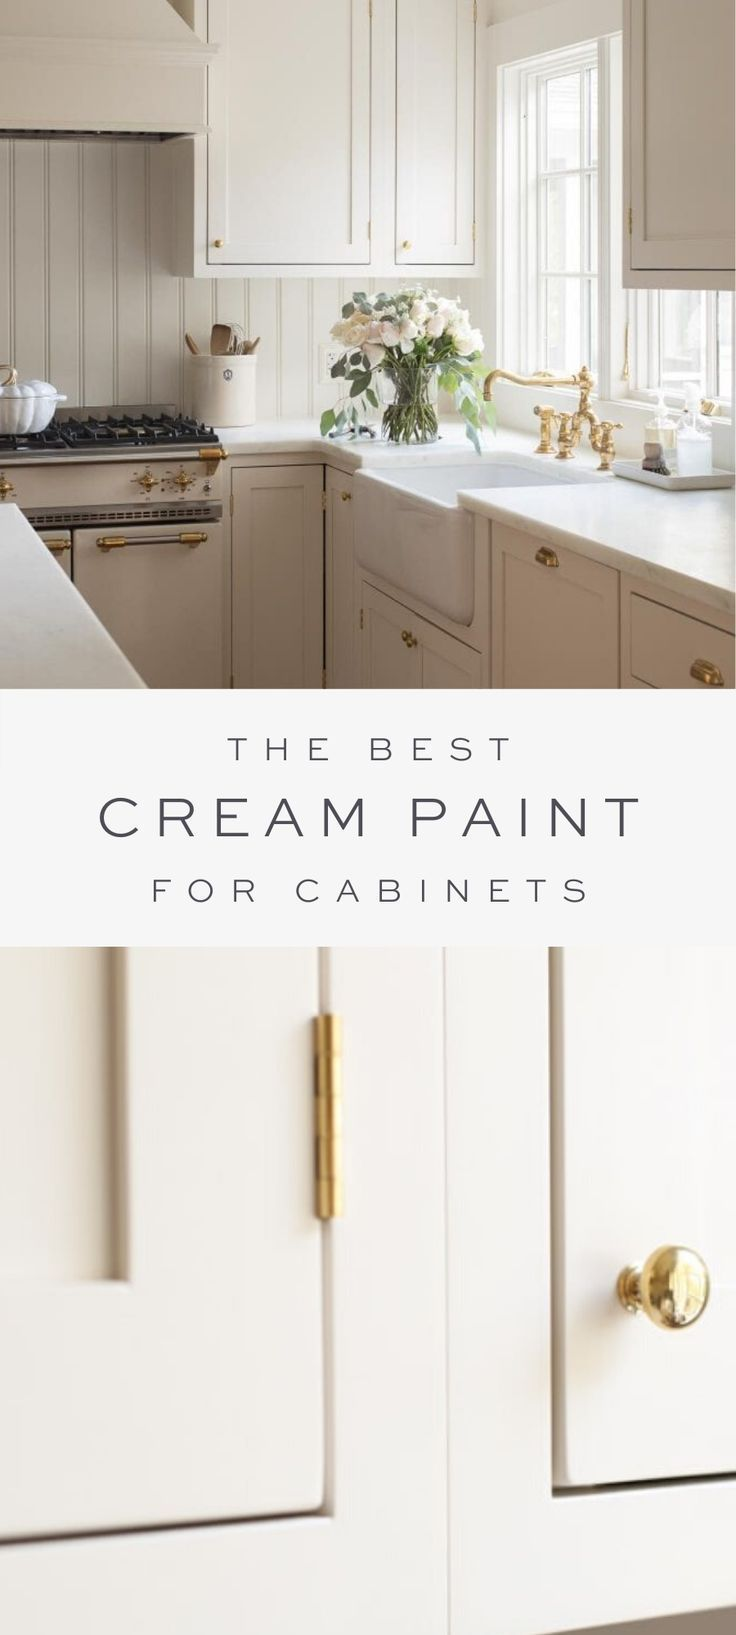 The Prettiest Paint Color For Cream Kitchen Cabinets For A Warm And Invit In 2020 Cream Kitchen Cabinets Painted Kitchen Cabinets Colors Cream Painted Kitchen Cabinets